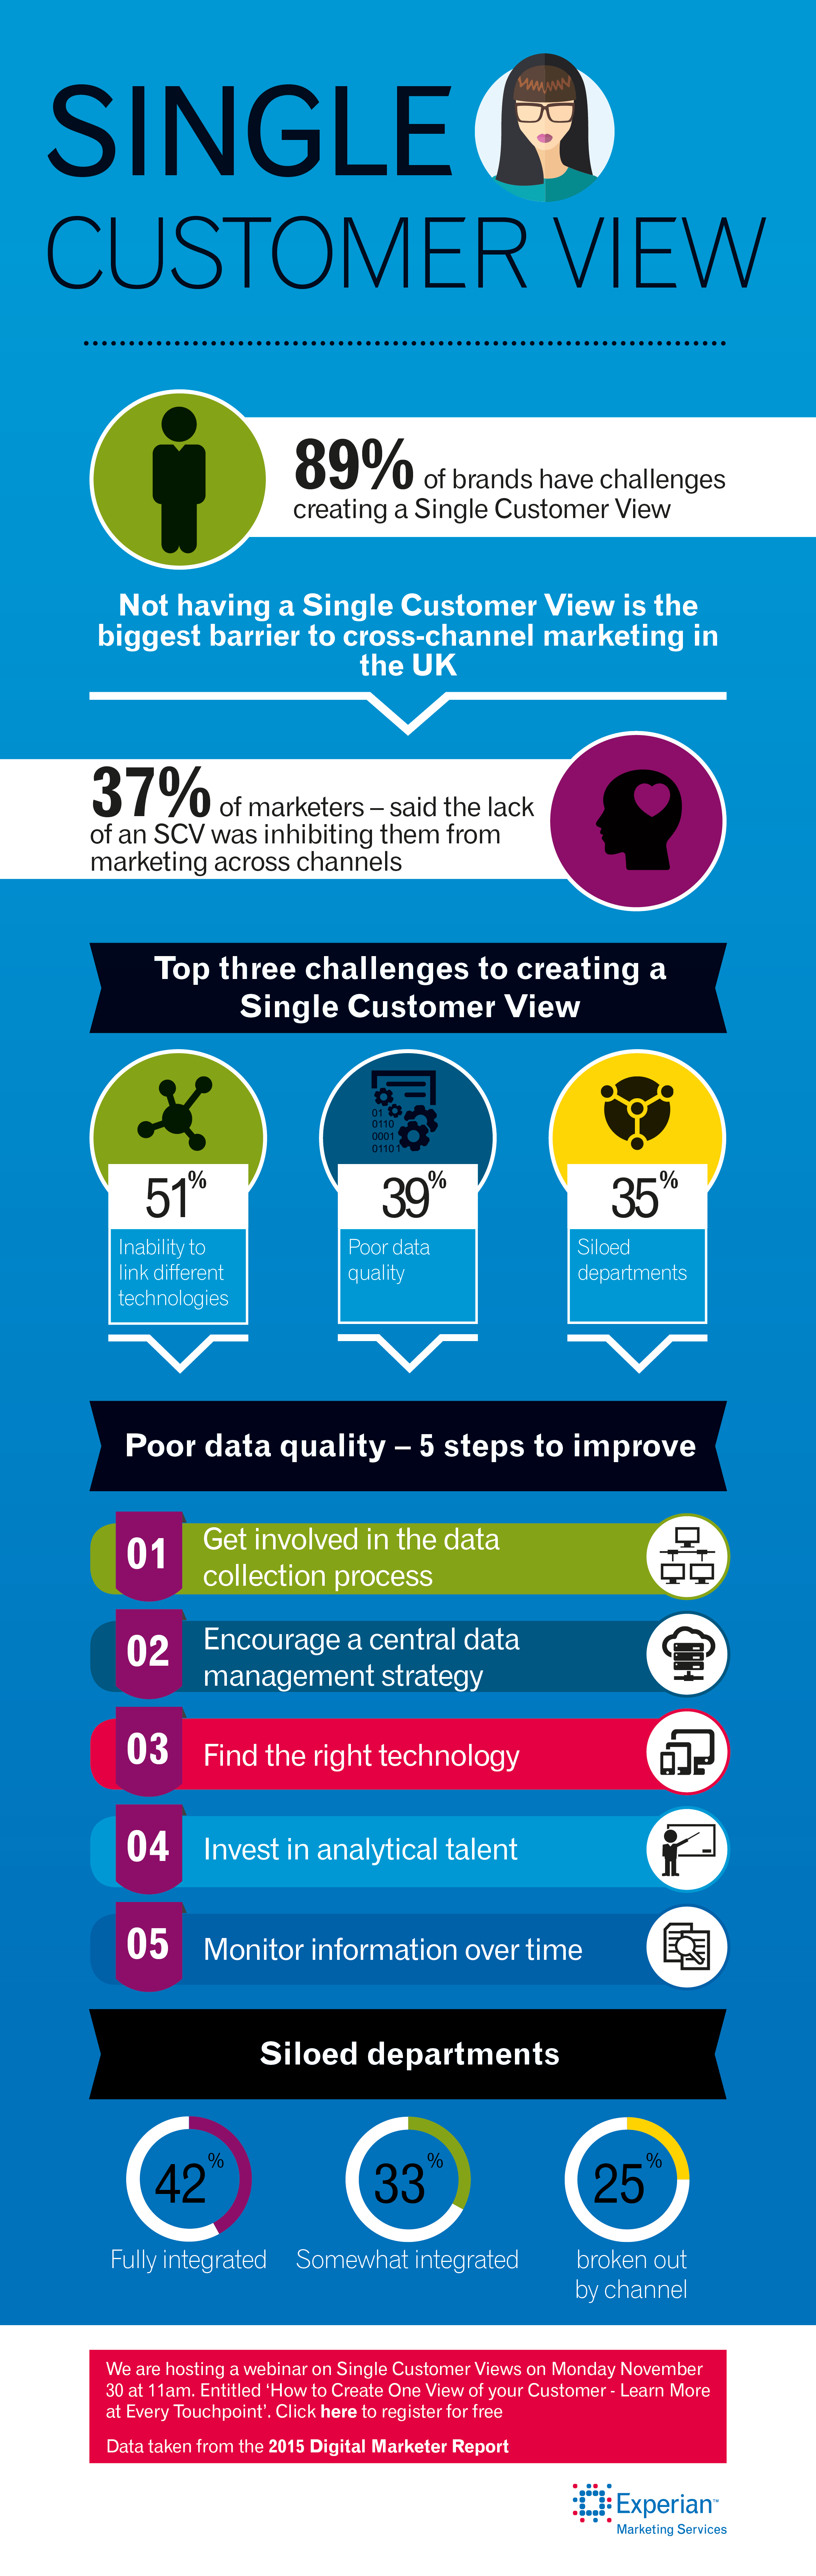 2016-1-8Experian_Single_Customer_View_Infographic-v1